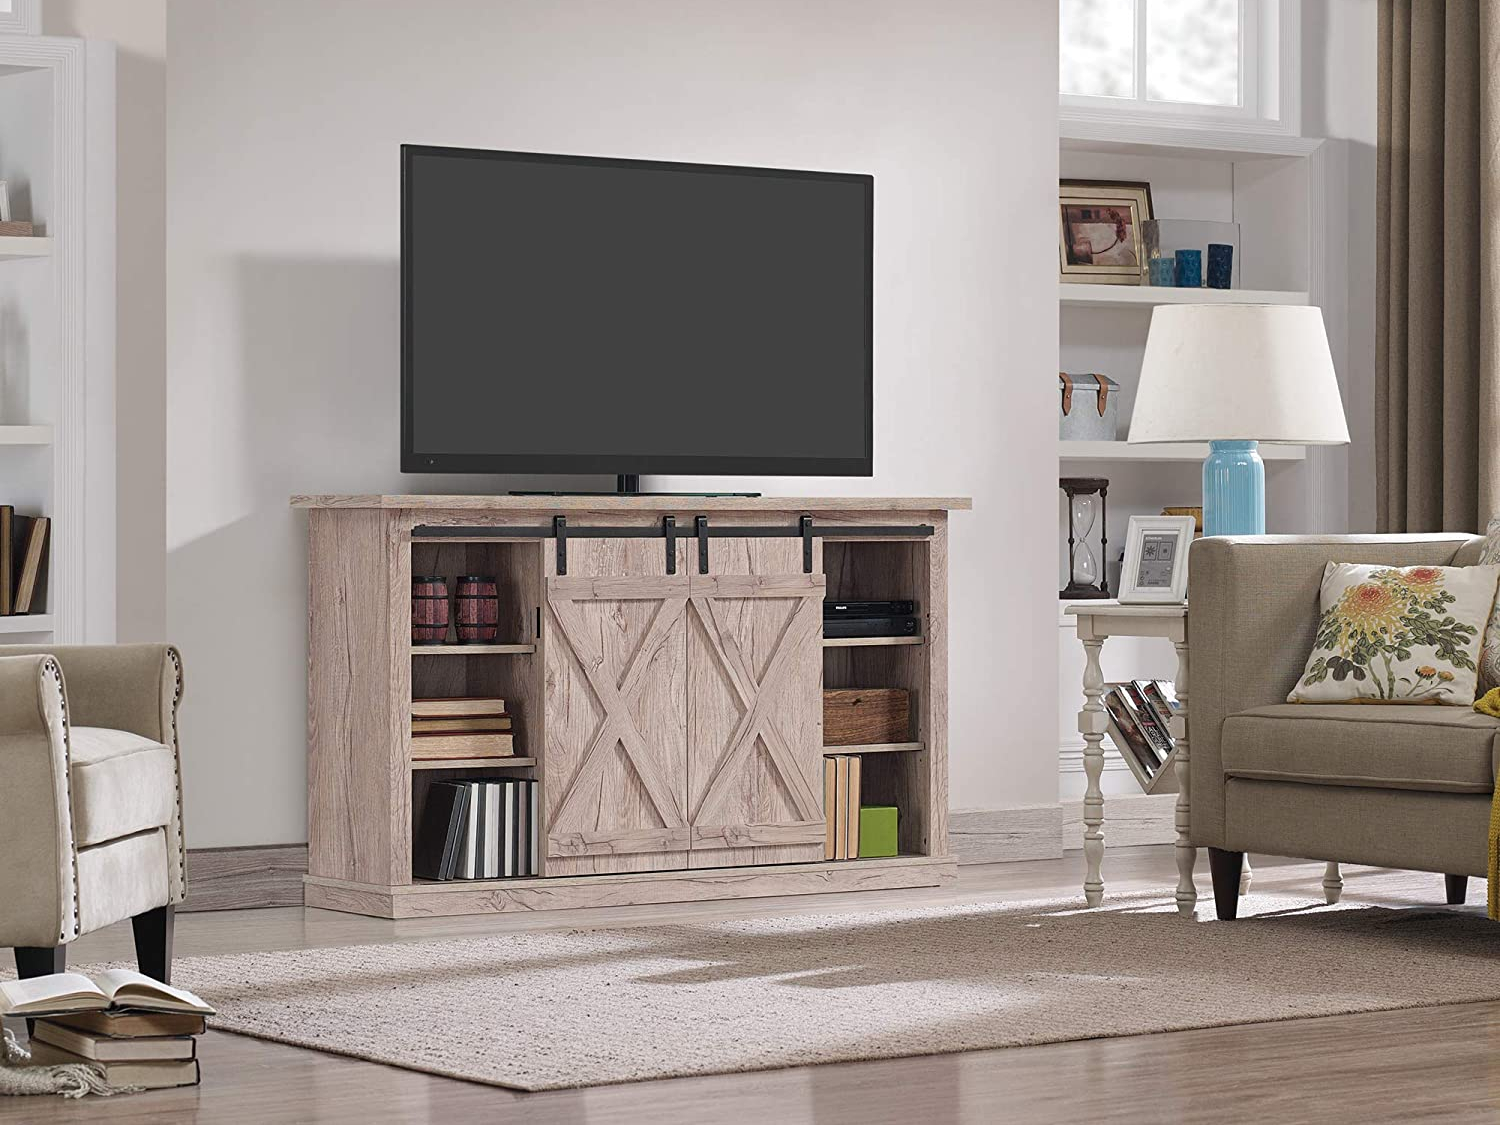 Best Entertainment Centers 2020 Top Tv Stands To Organize Your Home Rolling Stone